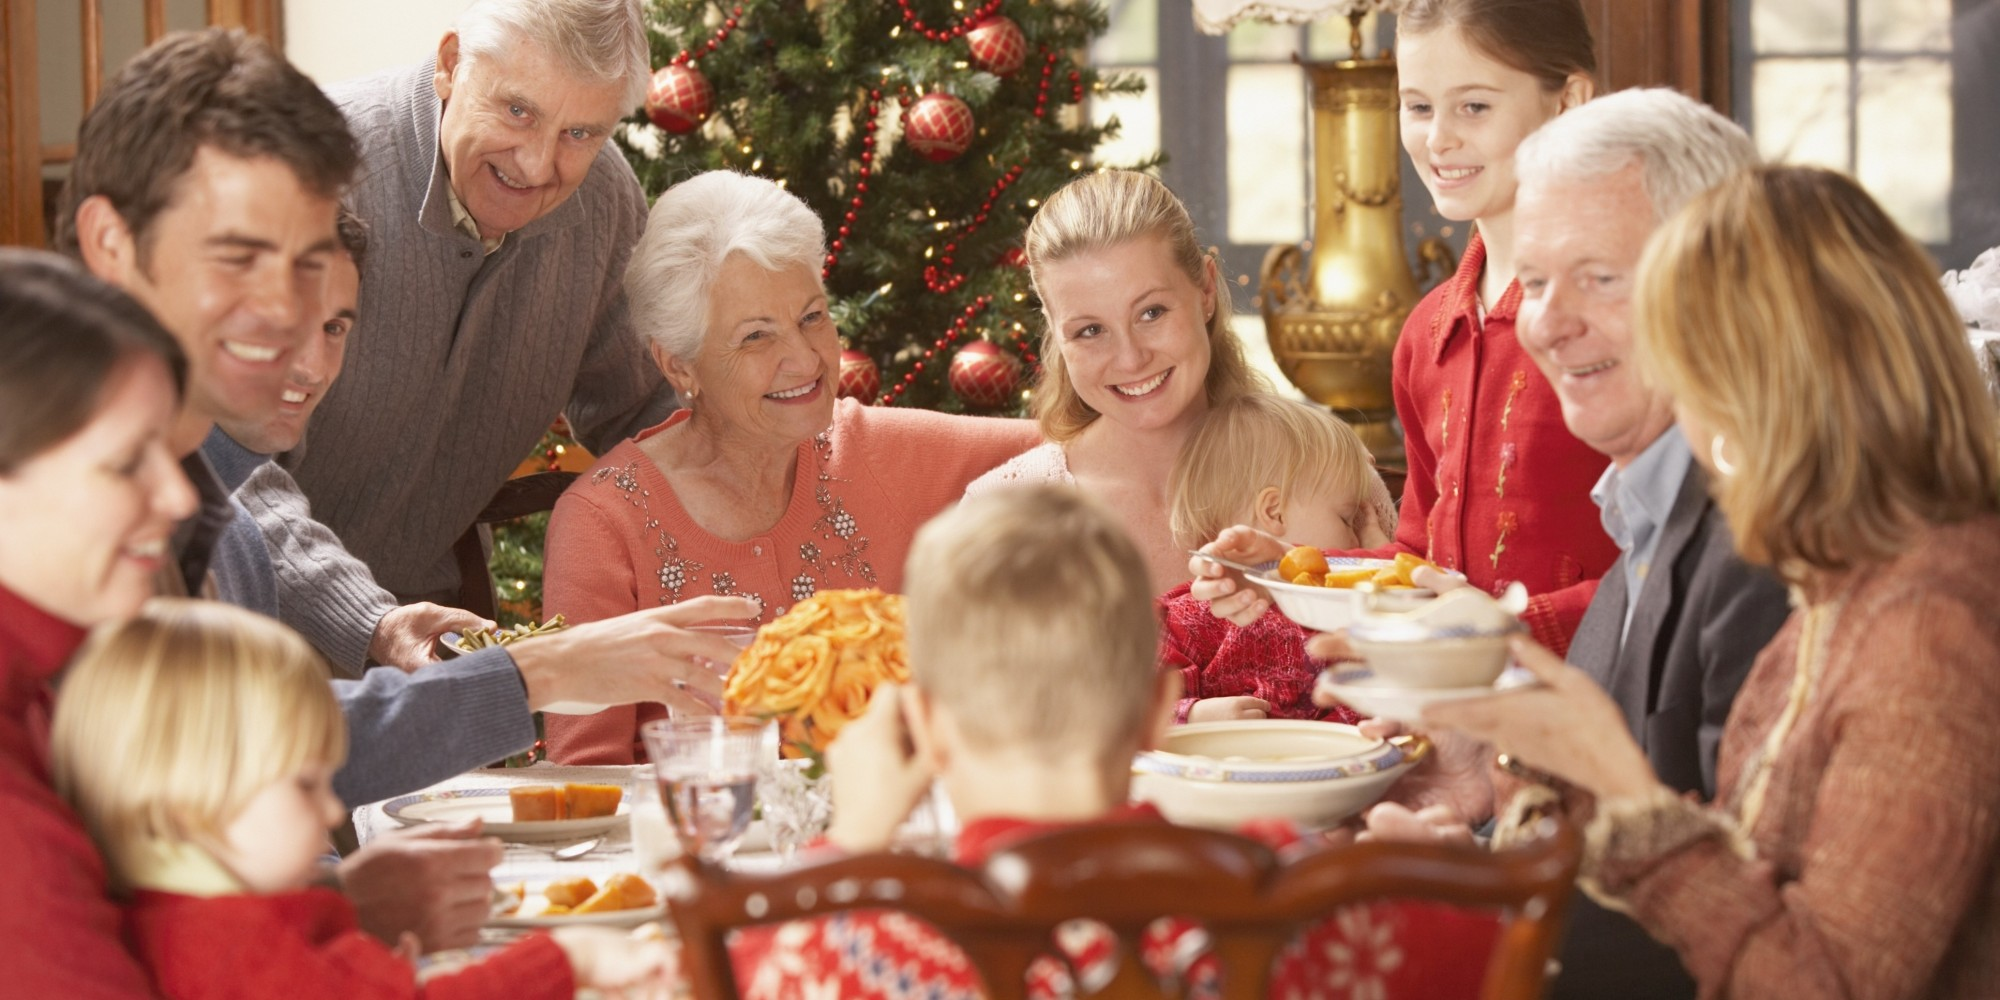 Family Christmas Picture How To Get Through Christmas Without Arguing About Brexit